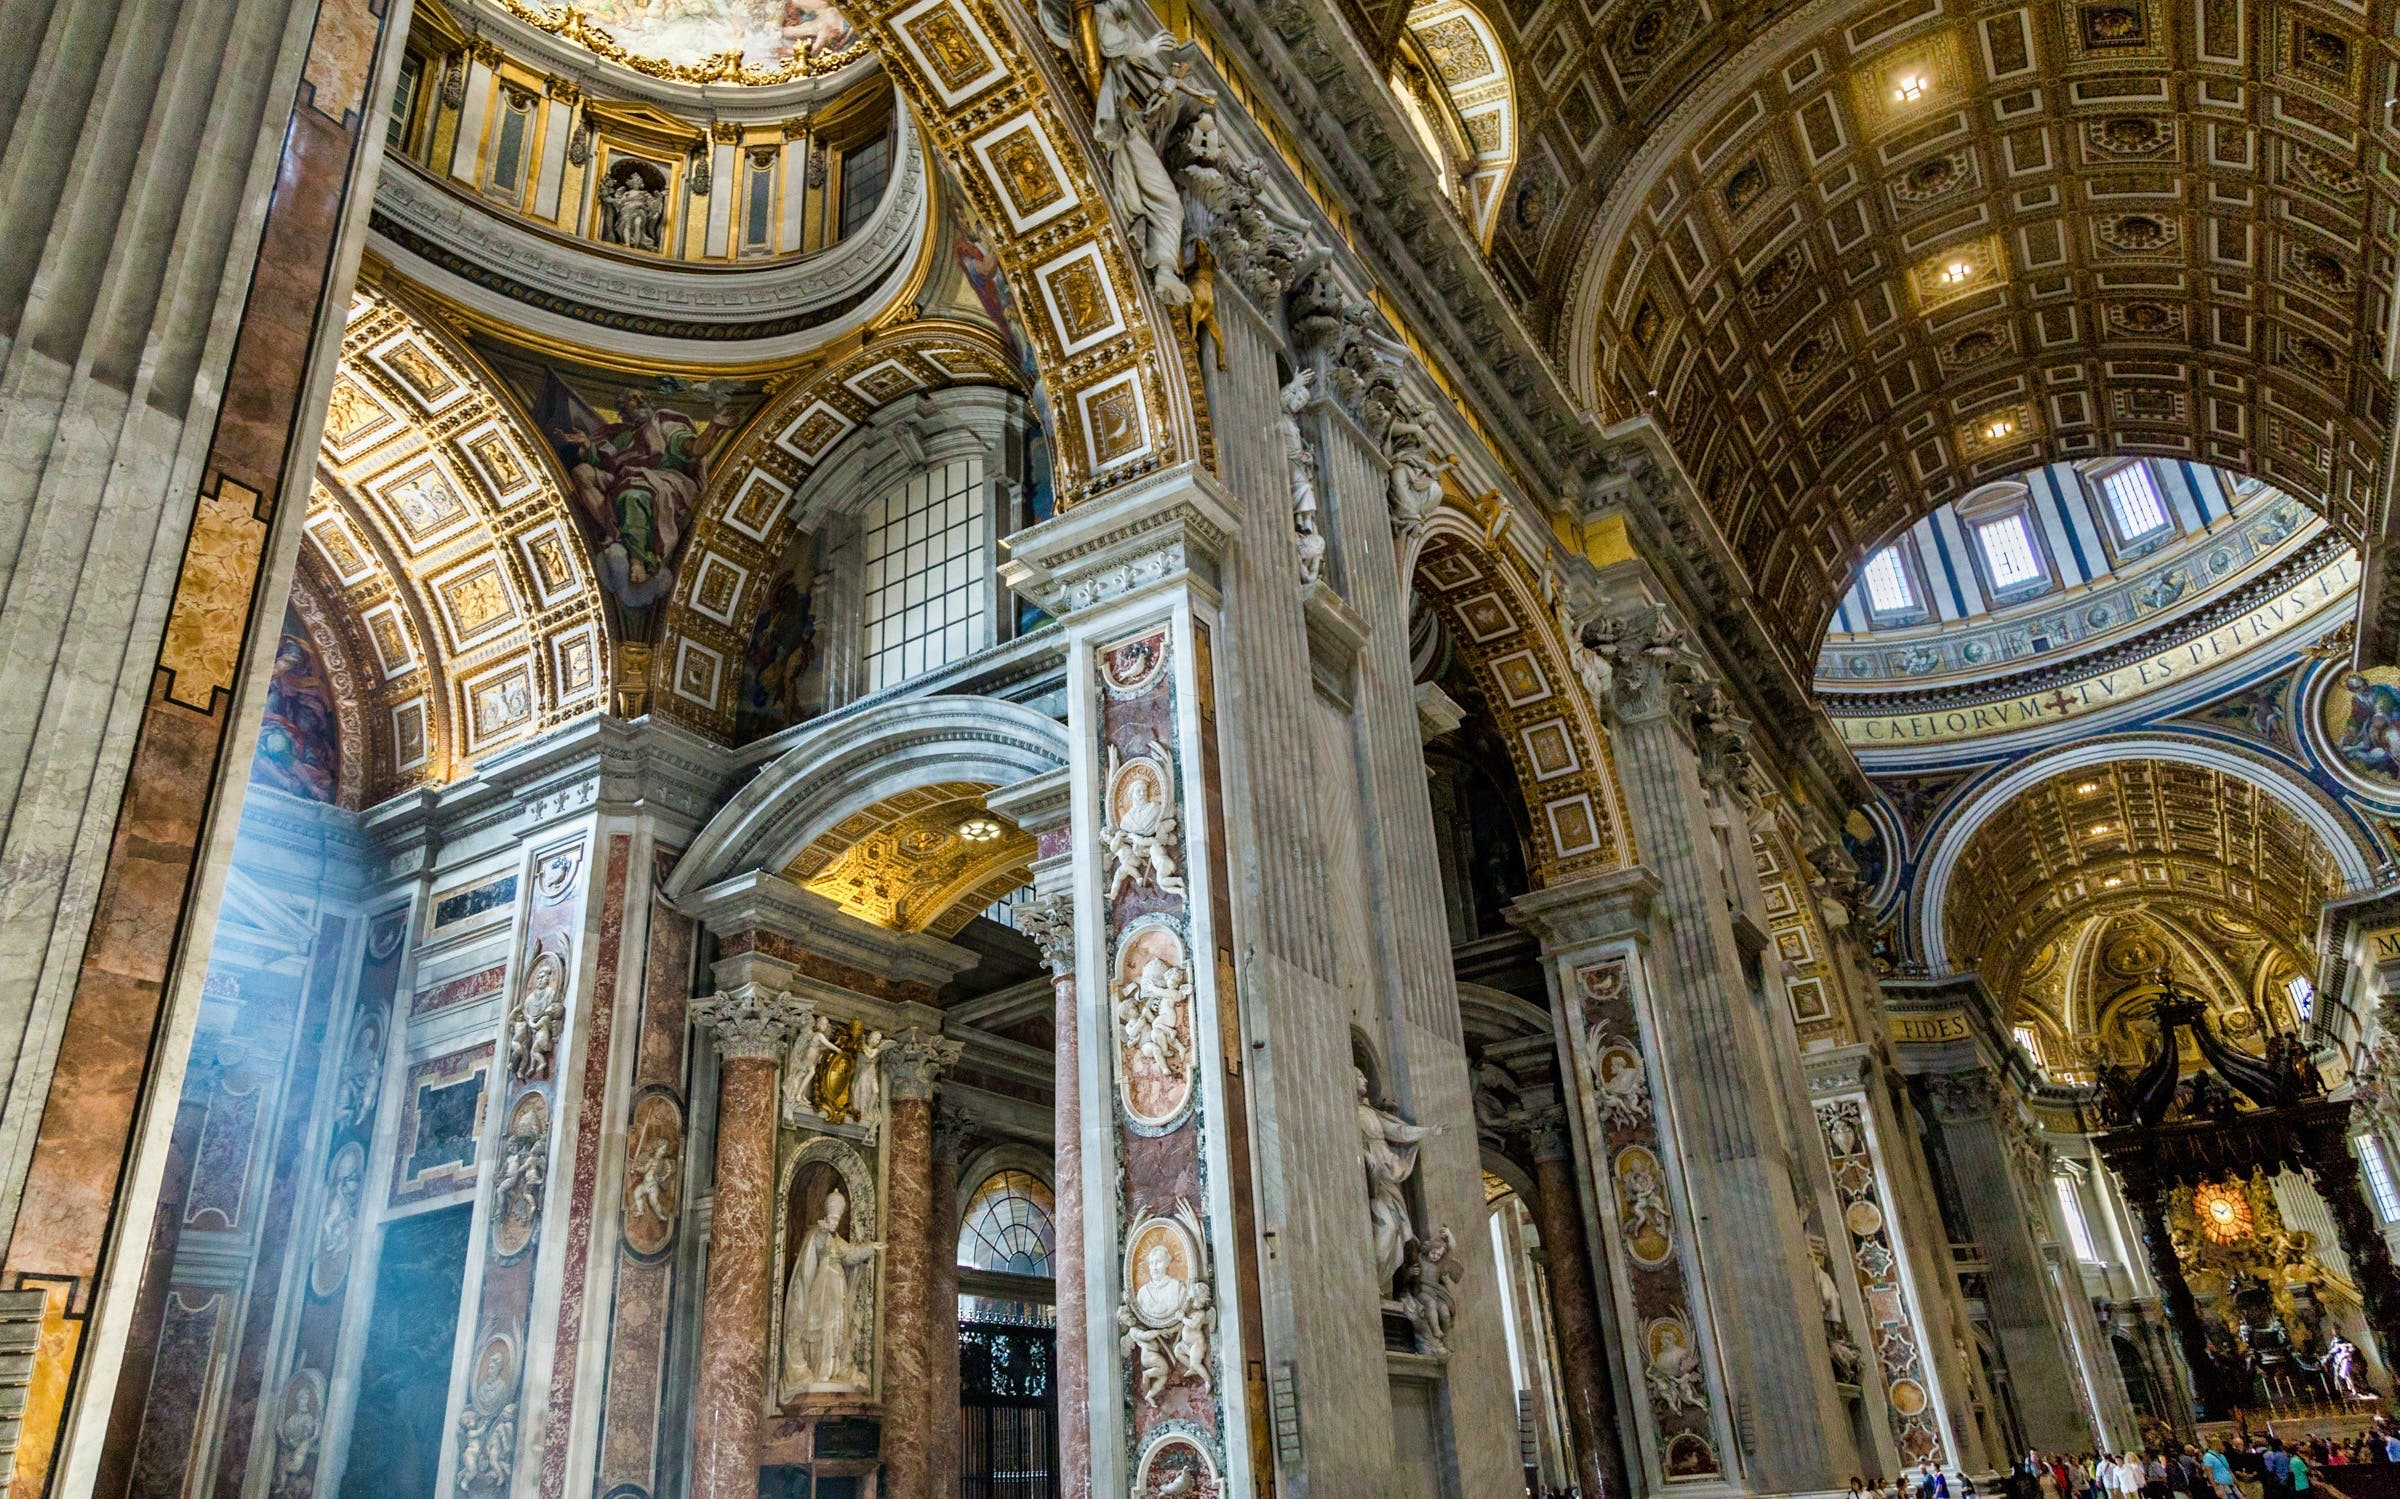 exclusive entry: sistine chapel express, st. peter's basilica & vatican cr-2